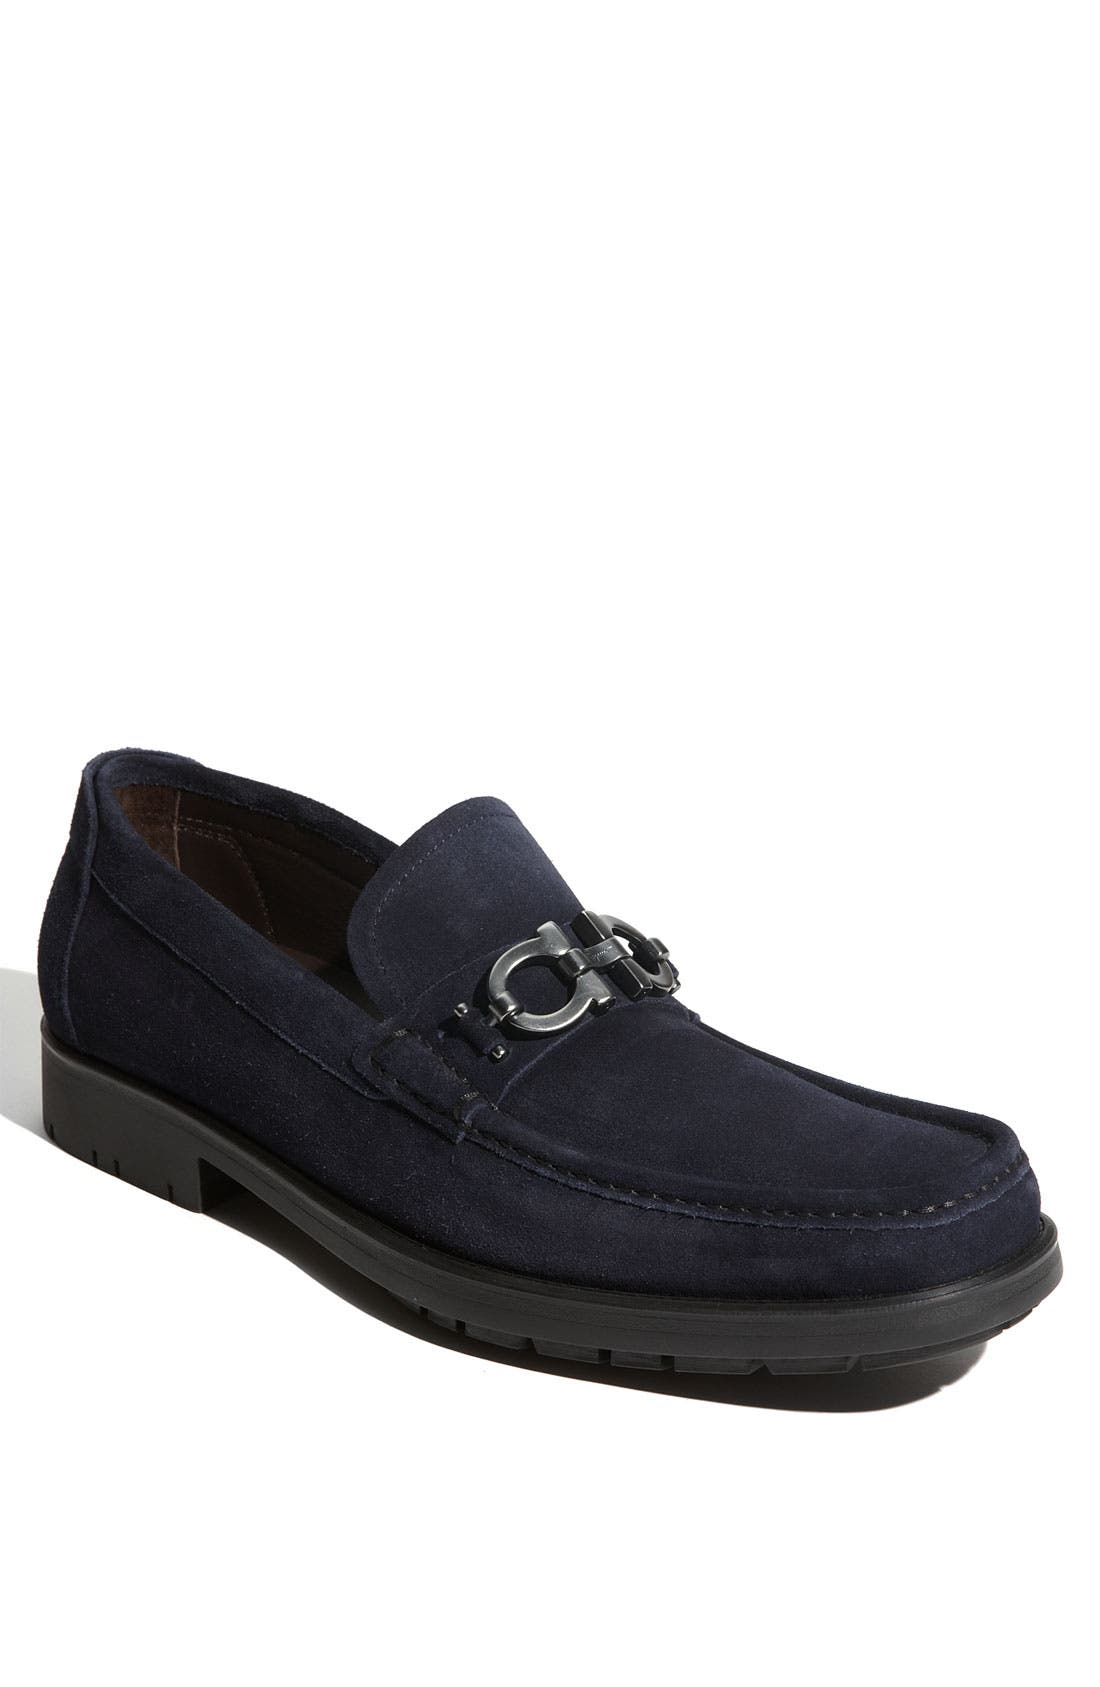 Main Image - Salvatore Ferragamo 'Master' Loafer